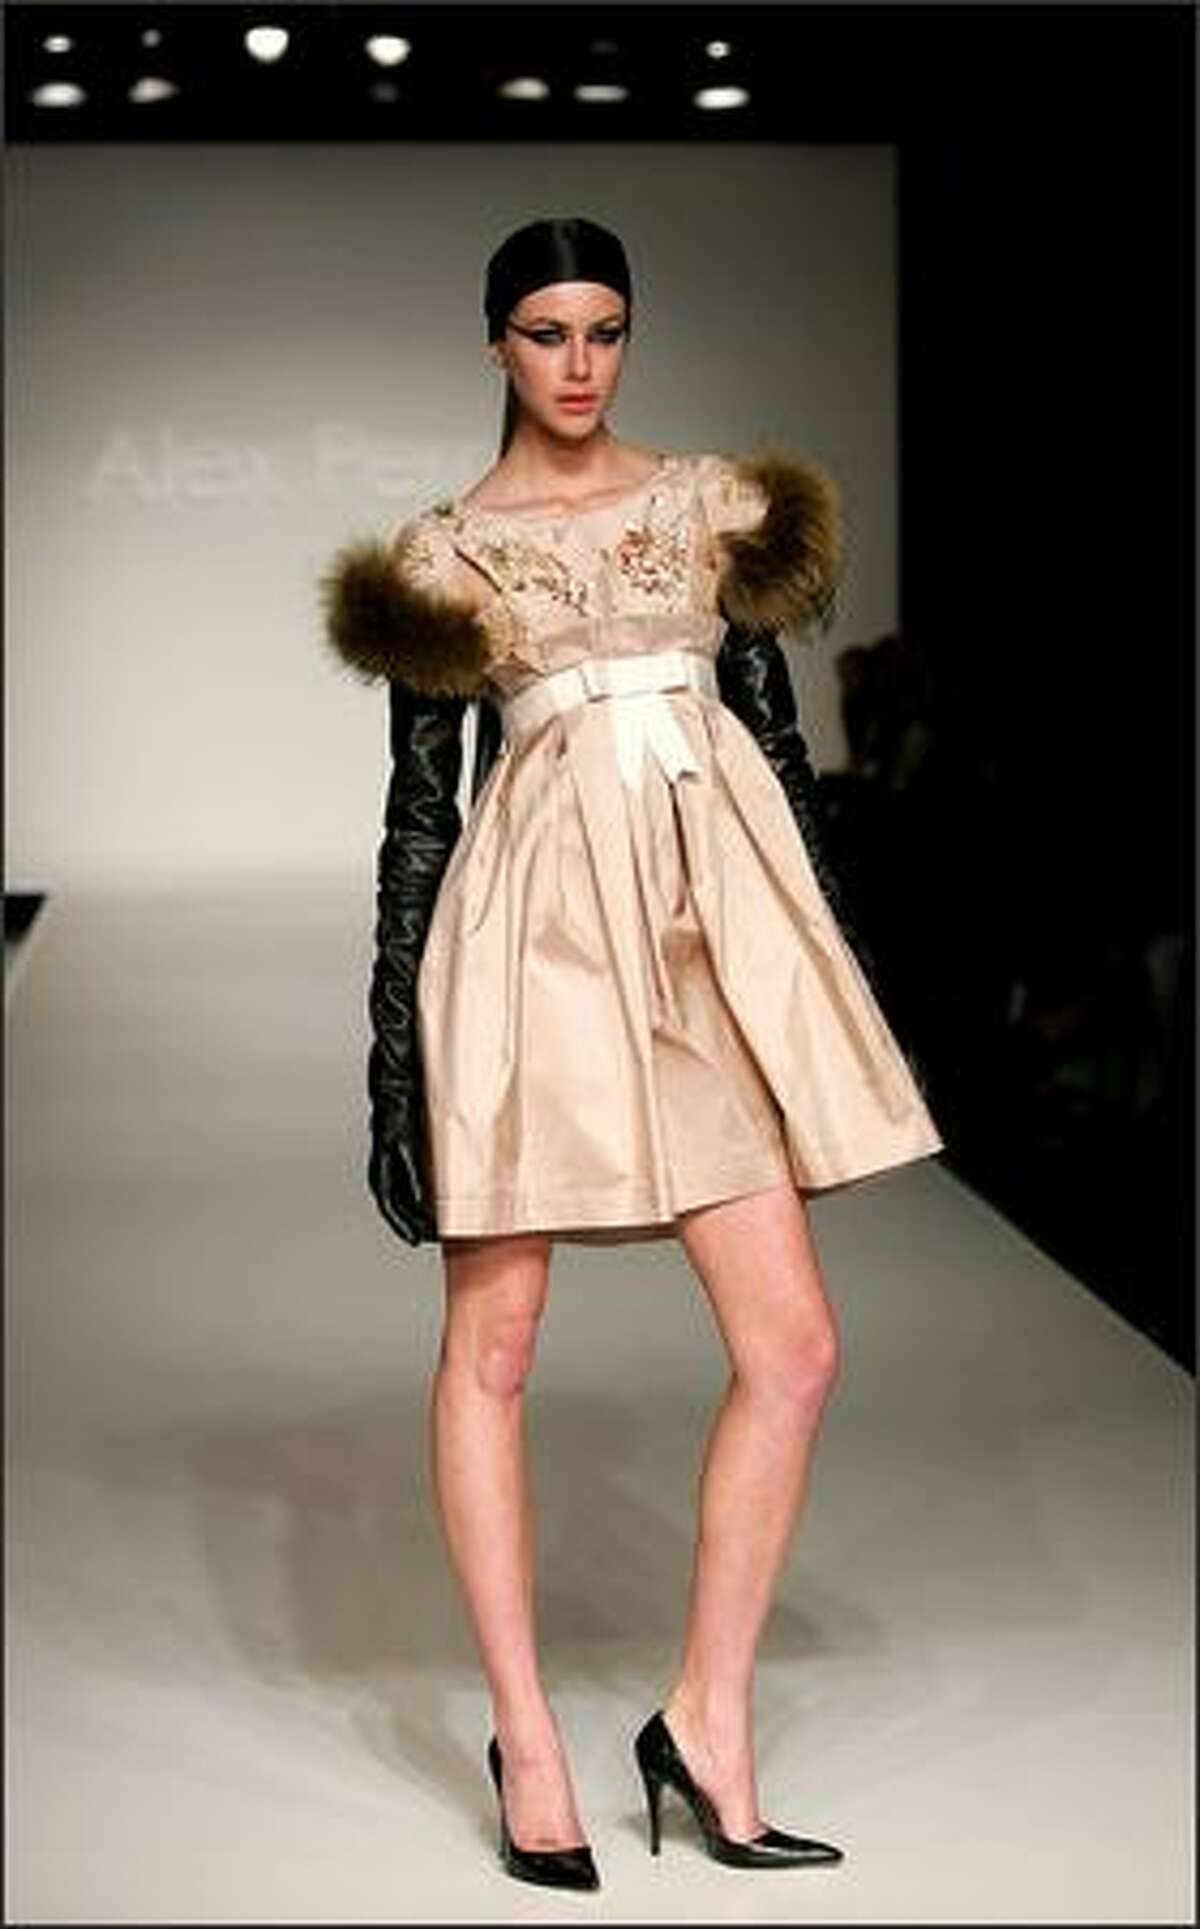 A model showcases designs on the catwalk by Alex Perry on the first day of Rosemount Australian Fashion Week's Transeasonal 2008 Collections, at the Overseas Passenger Terminal on October 9, 2007 in Sydney, Australia.